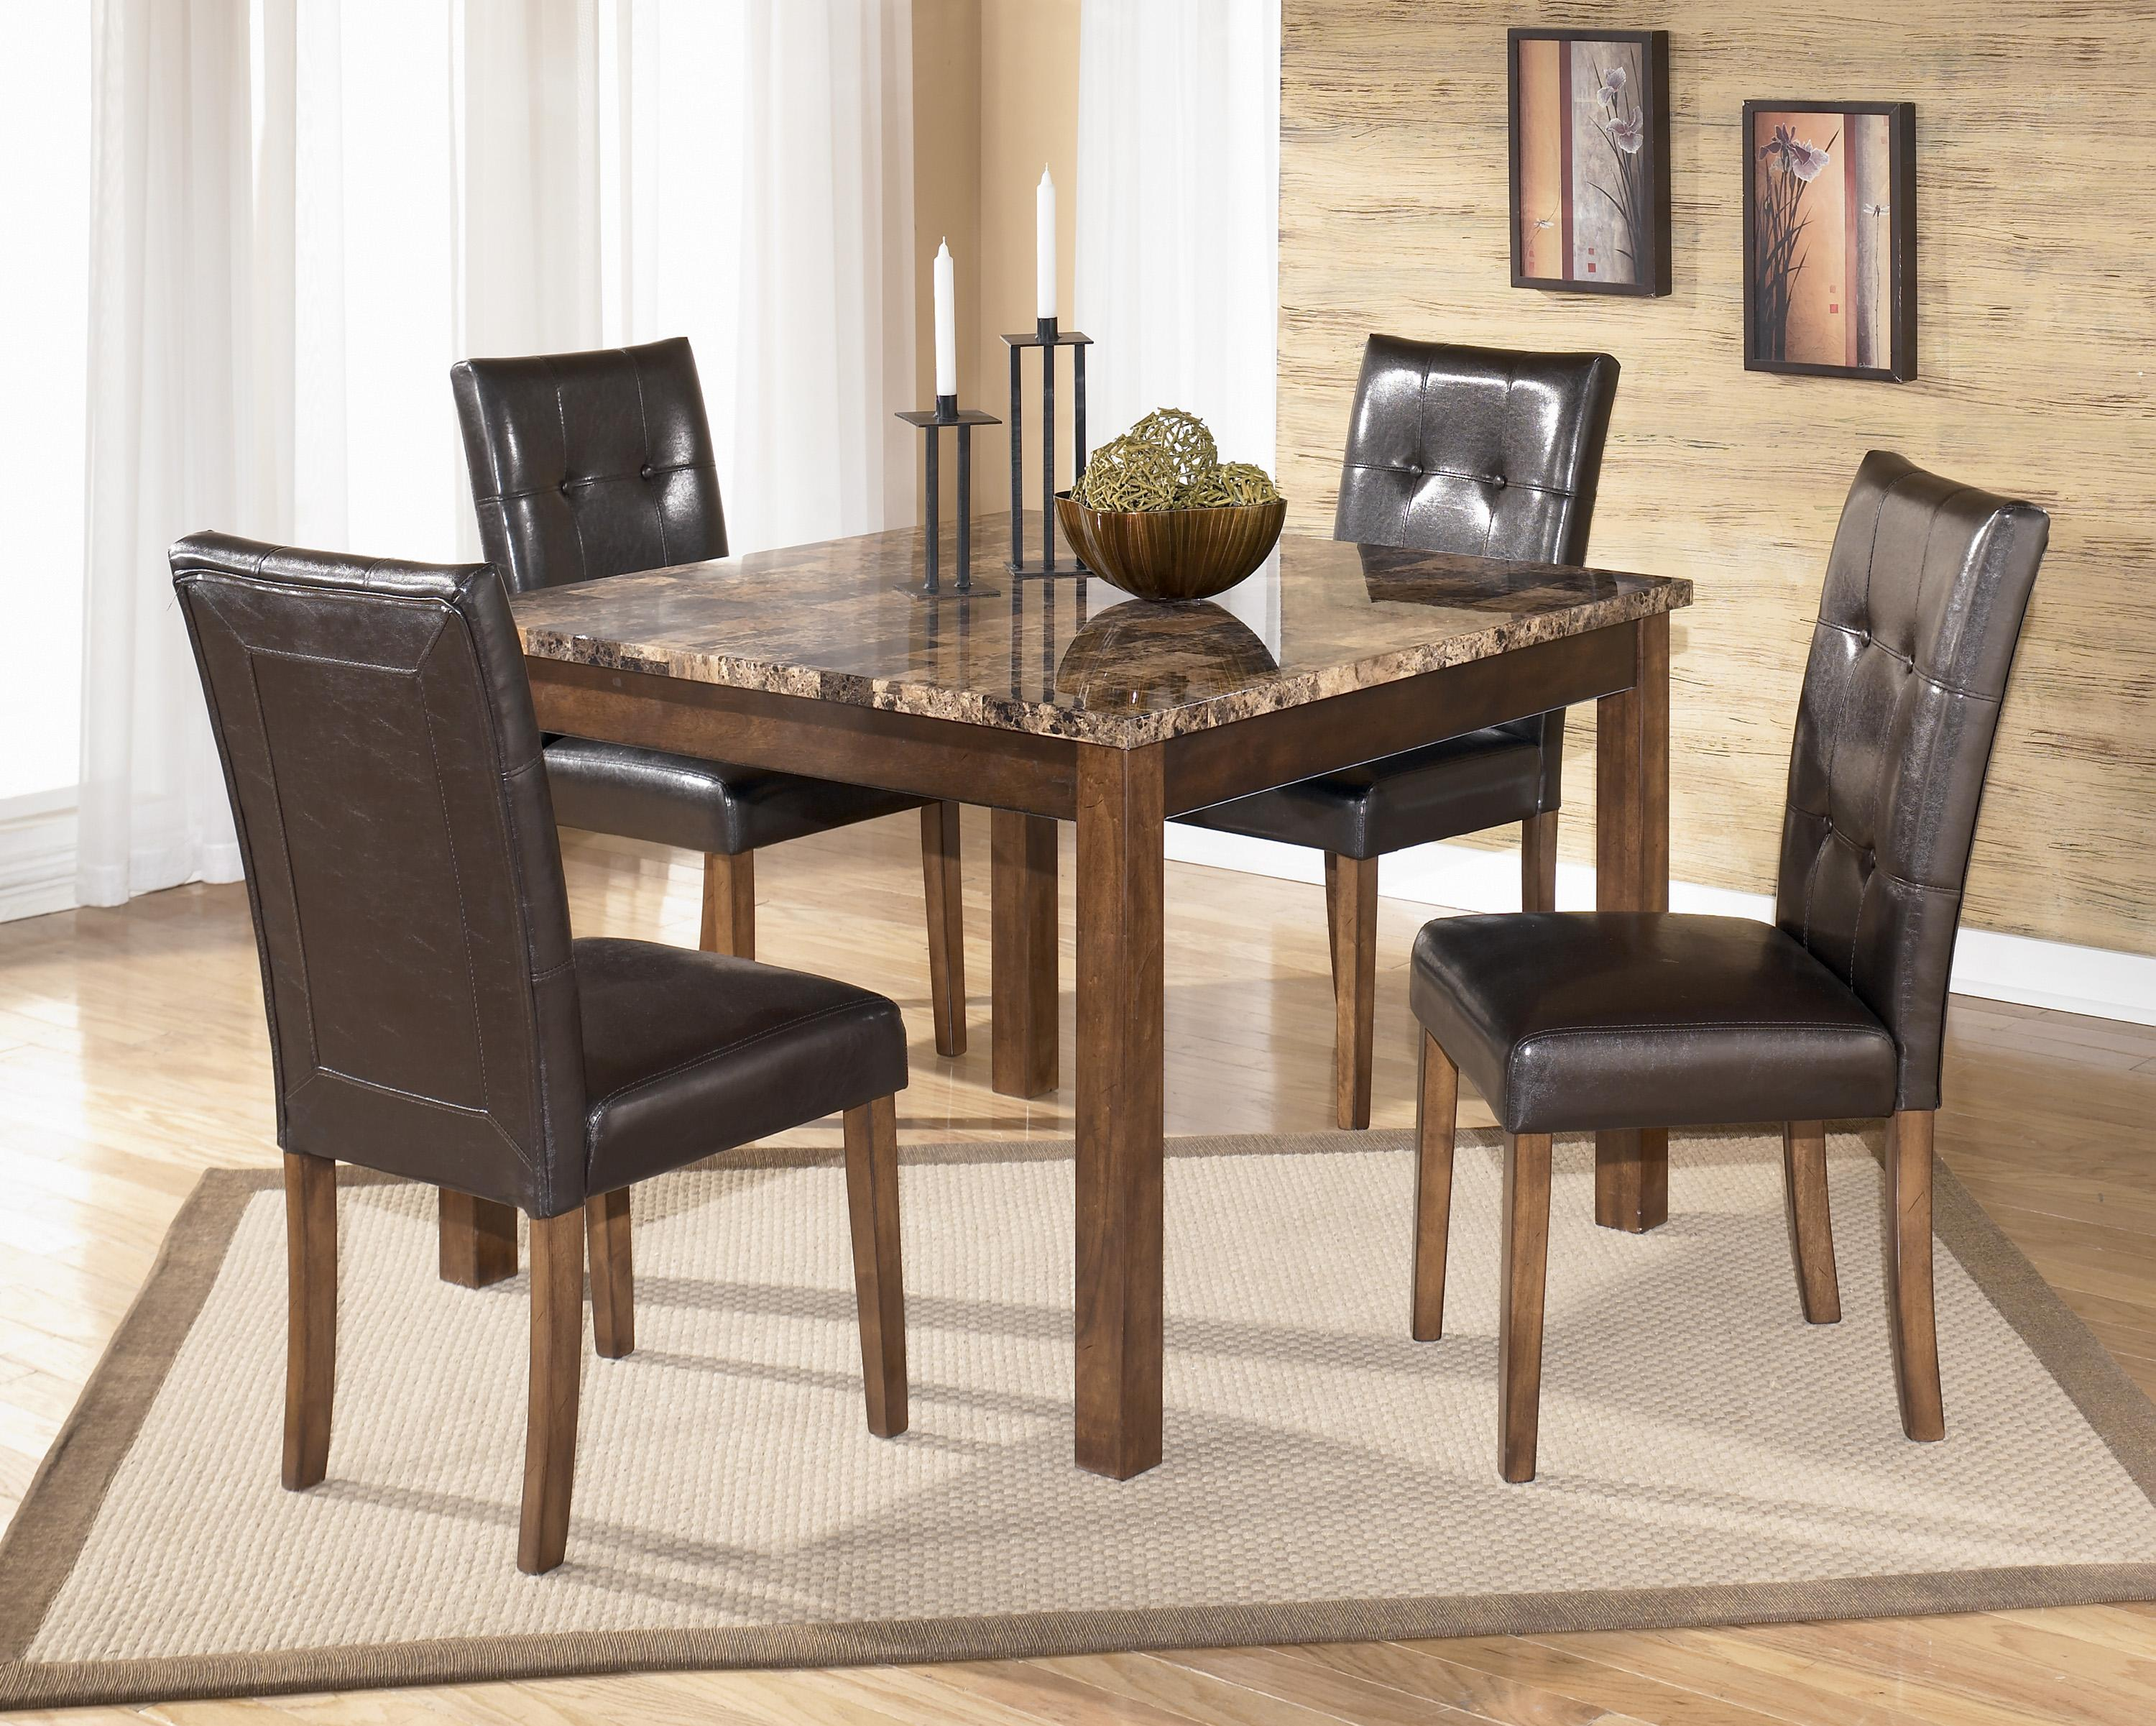 Signature Design by Ashley Theo 5 Piece Square Table Set - Item Number: D158-225